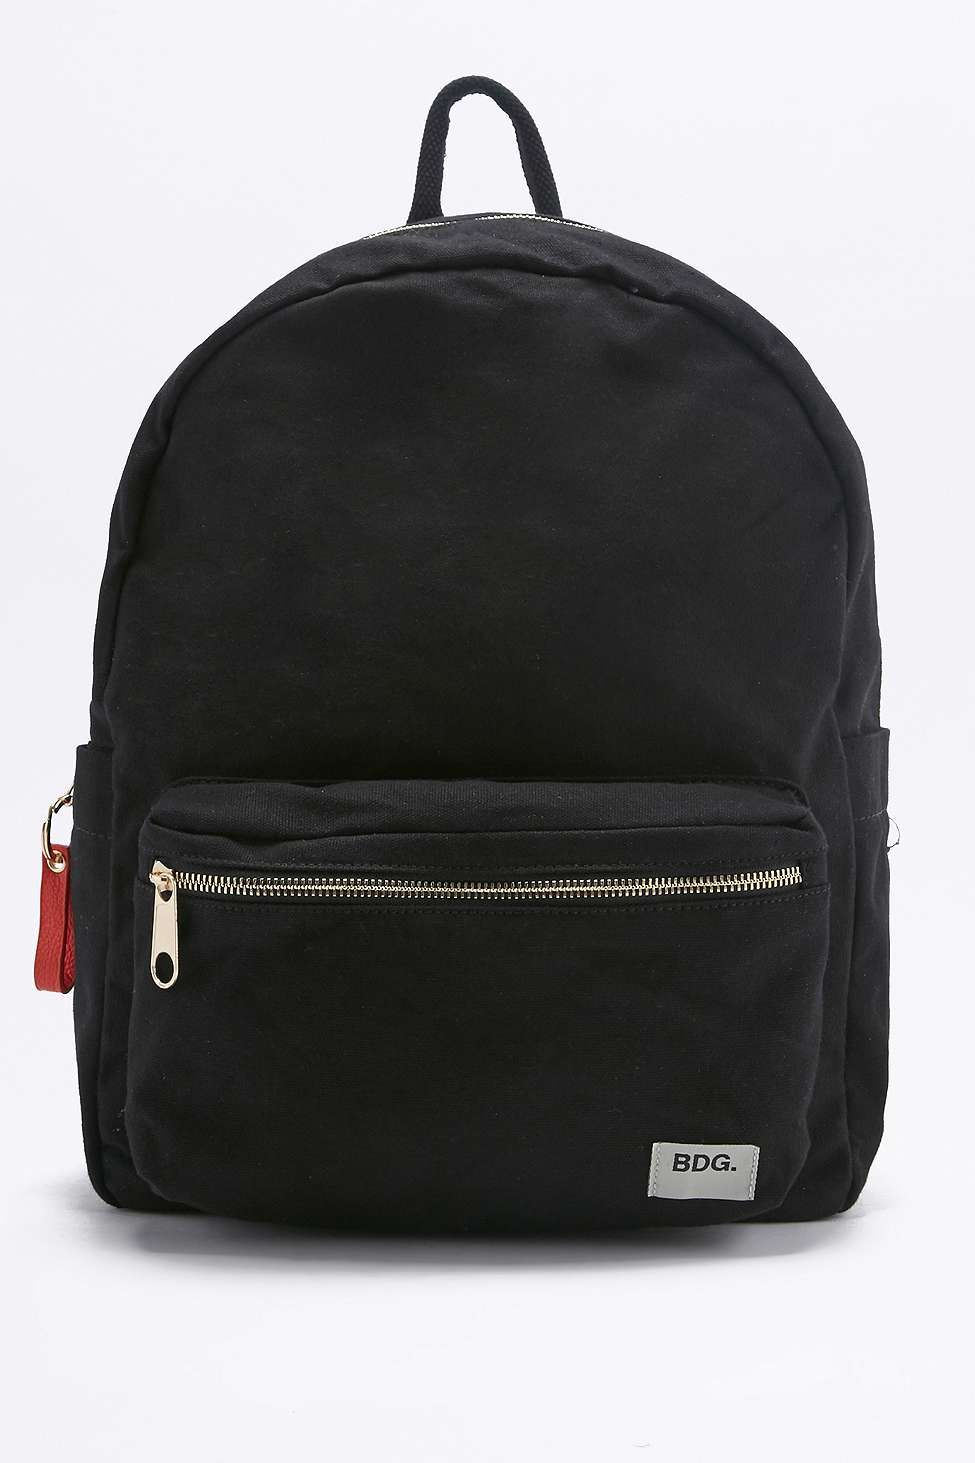 90b430a70 Urban Outfitters Bdg Canvas Backpack- Fenix Toulouse Handball